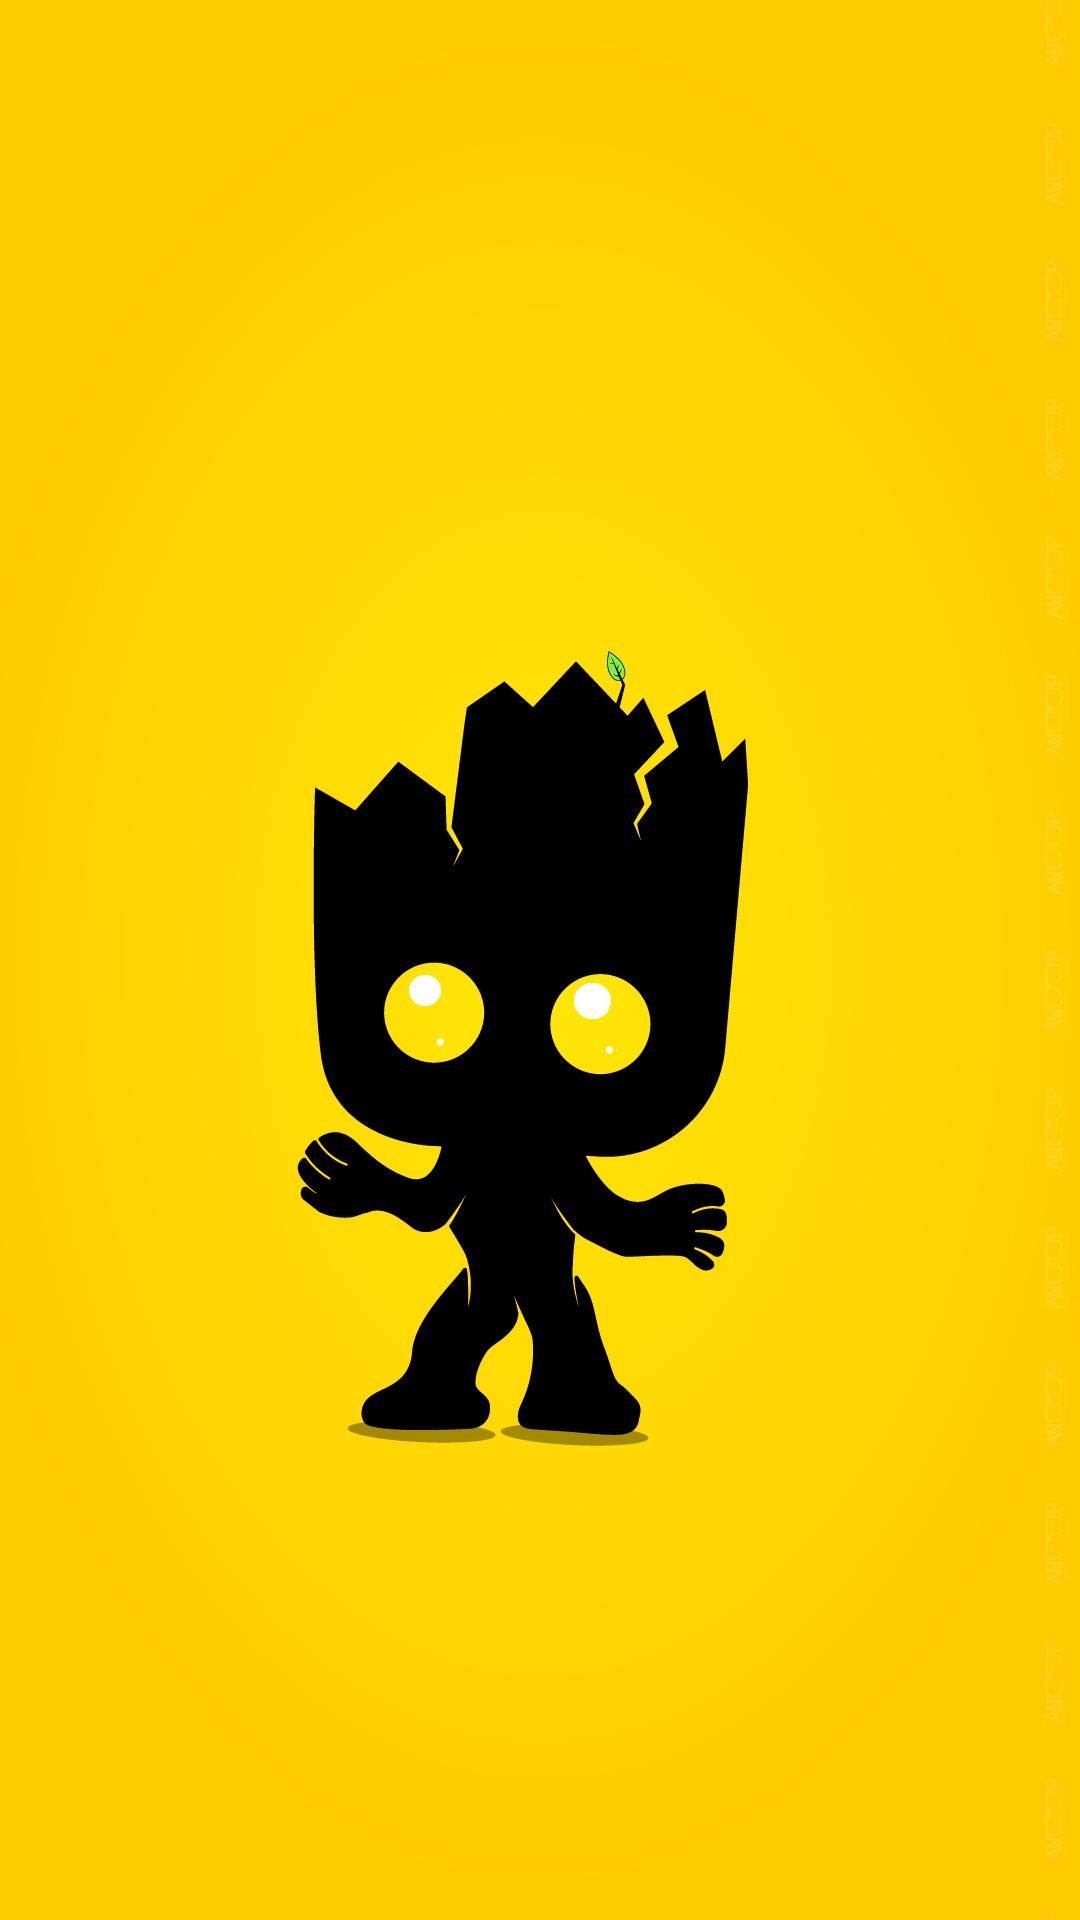 Cute Anime Wallpaper For Laptop Groot Minimal Wallpaper Iphone Wallpapers